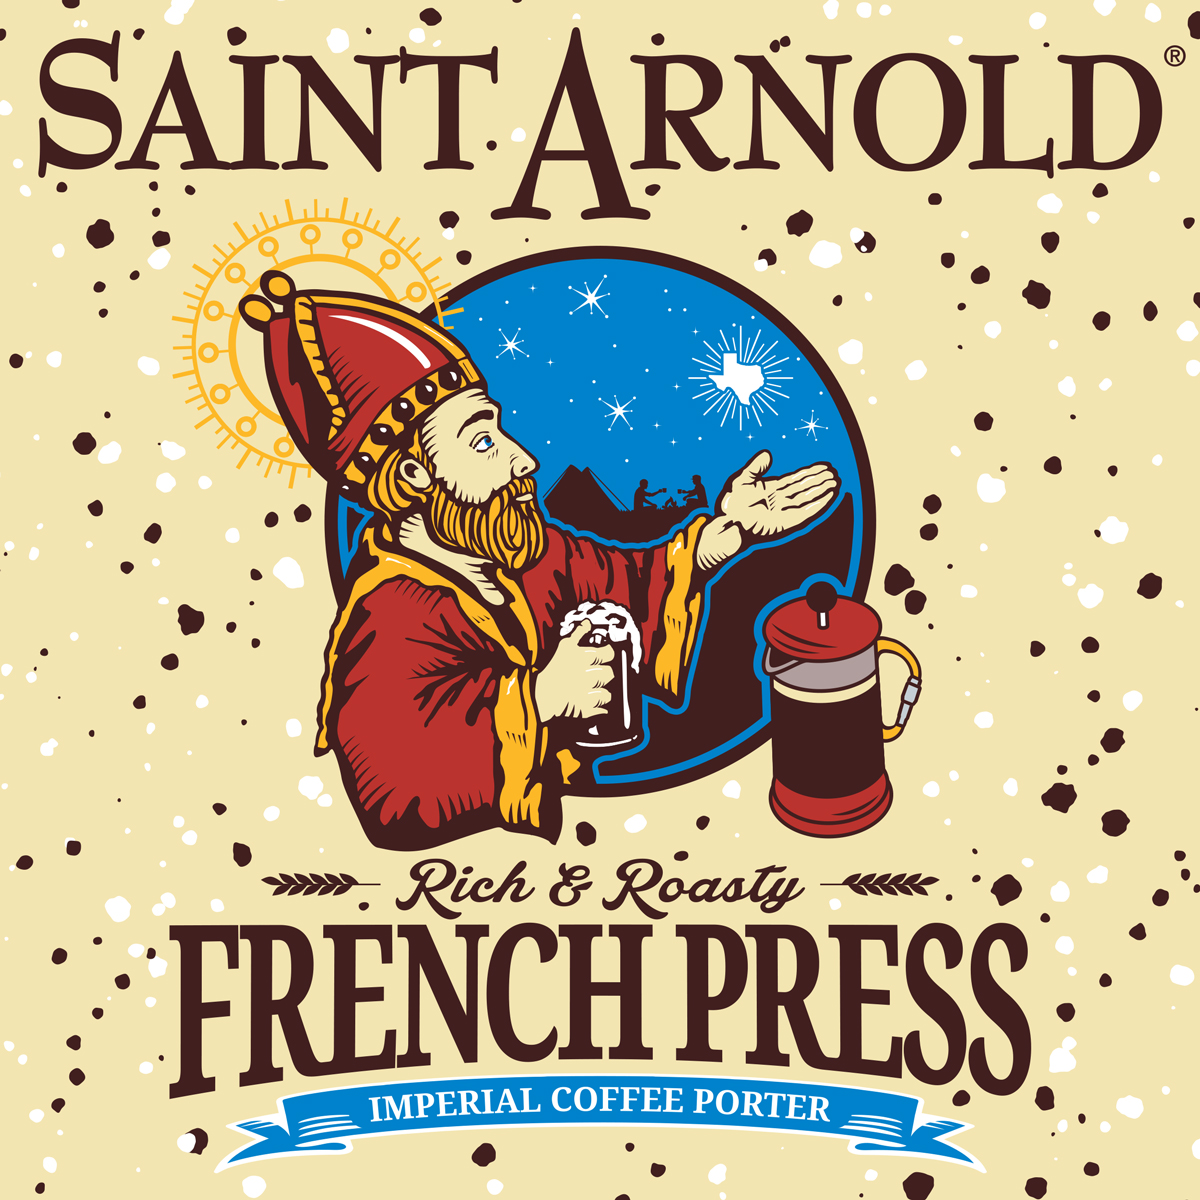 brand_image_french_press